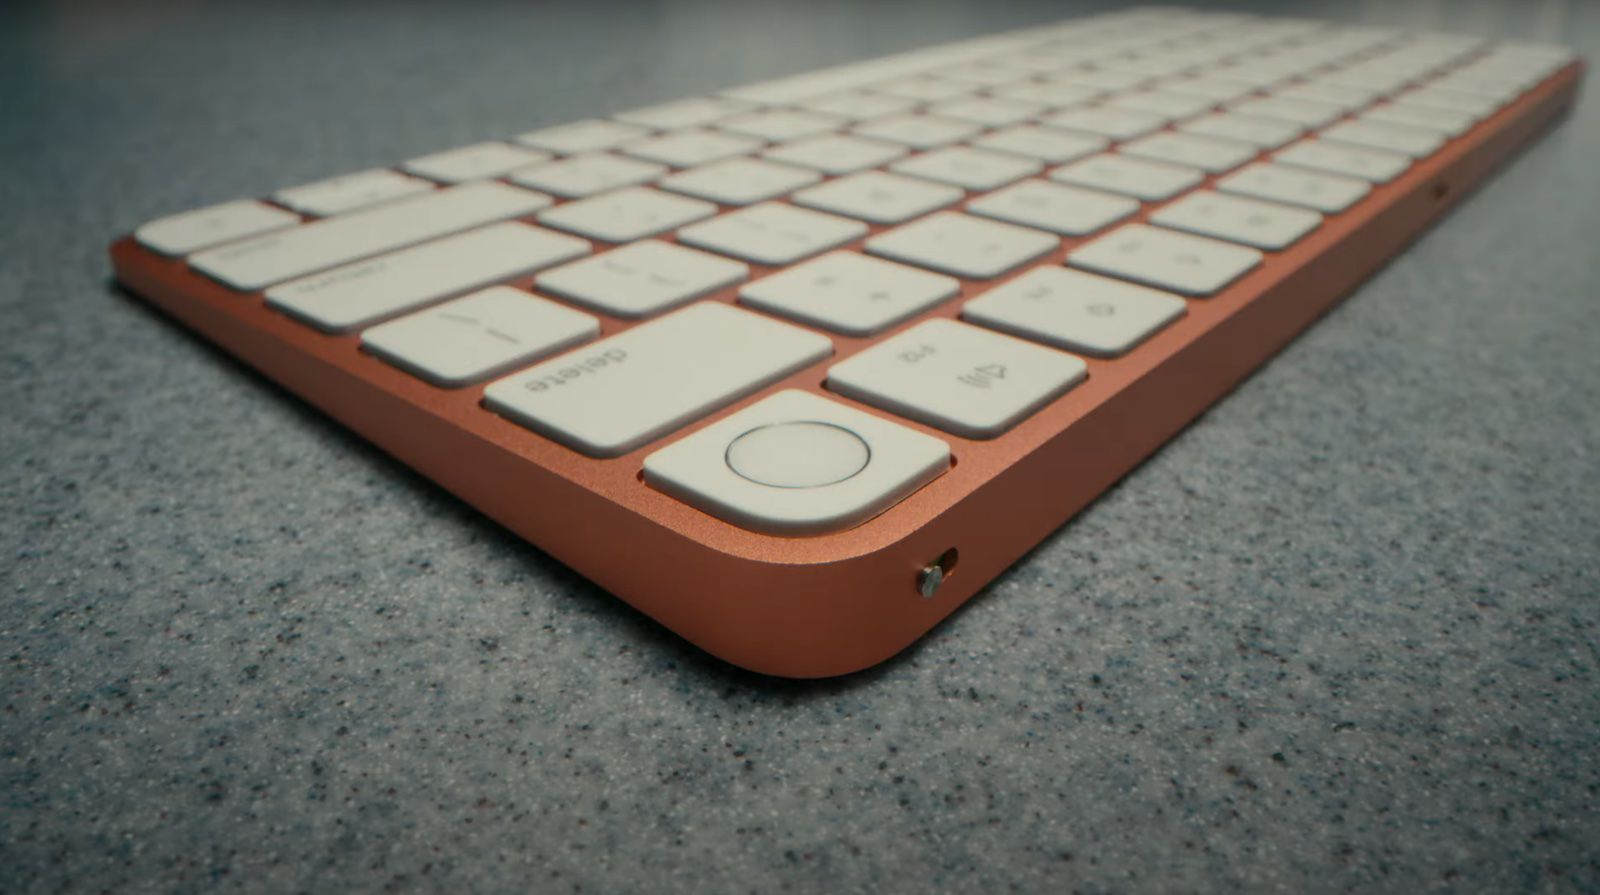 Magic Keyboard With Touch ID Compatible With All M1 Macs But Only Sold With iMac For Now – MacRumors